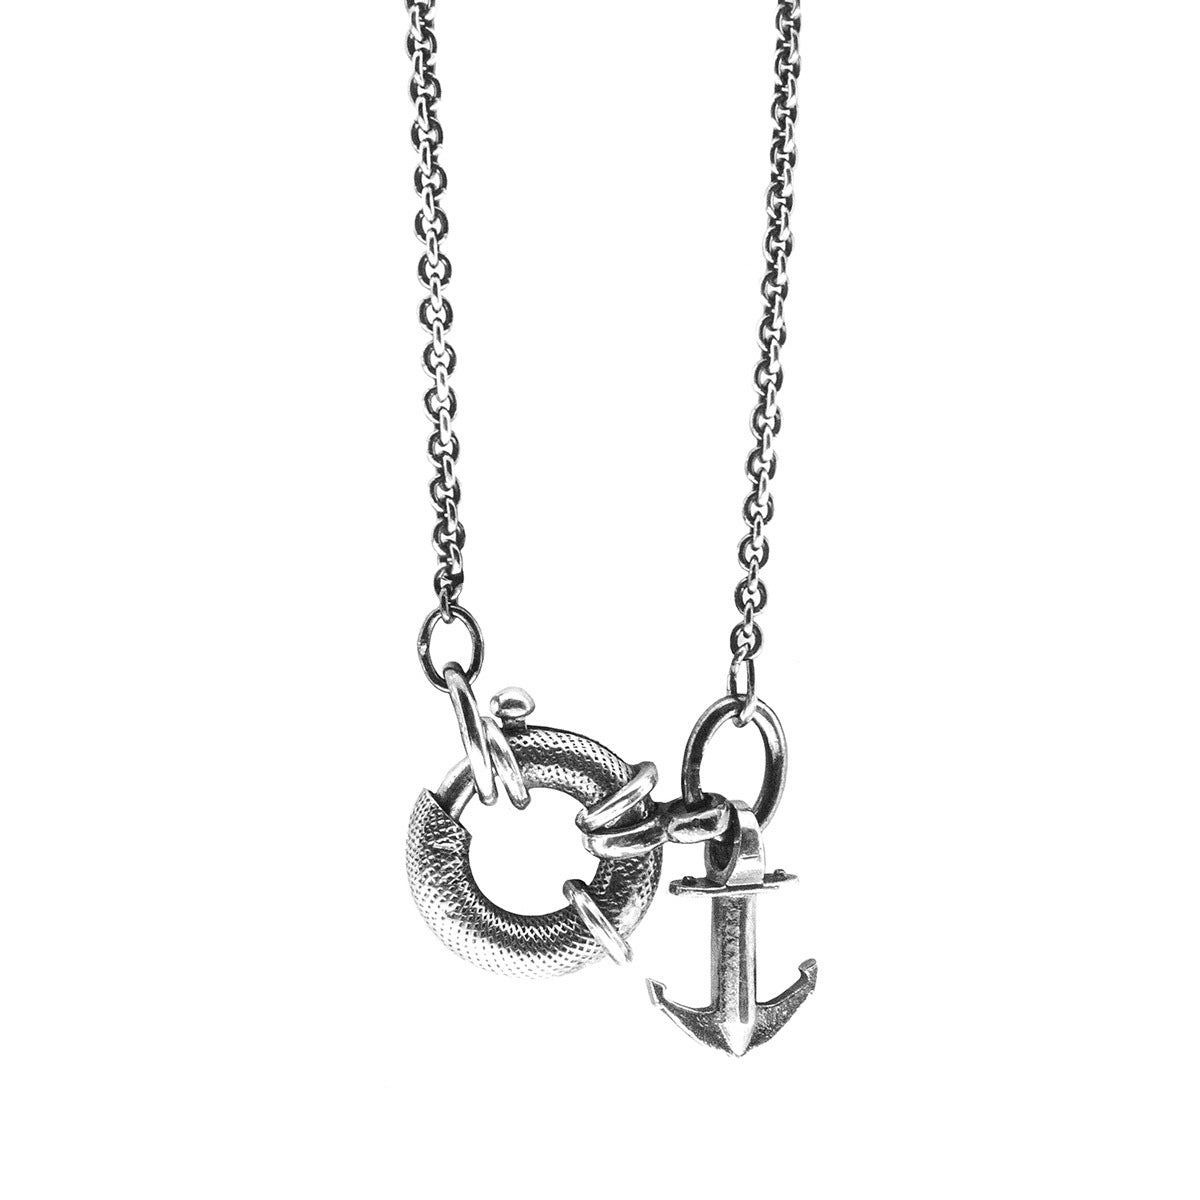 Jewelry-Clyde Anchor Signature Silver Necklace Pendant